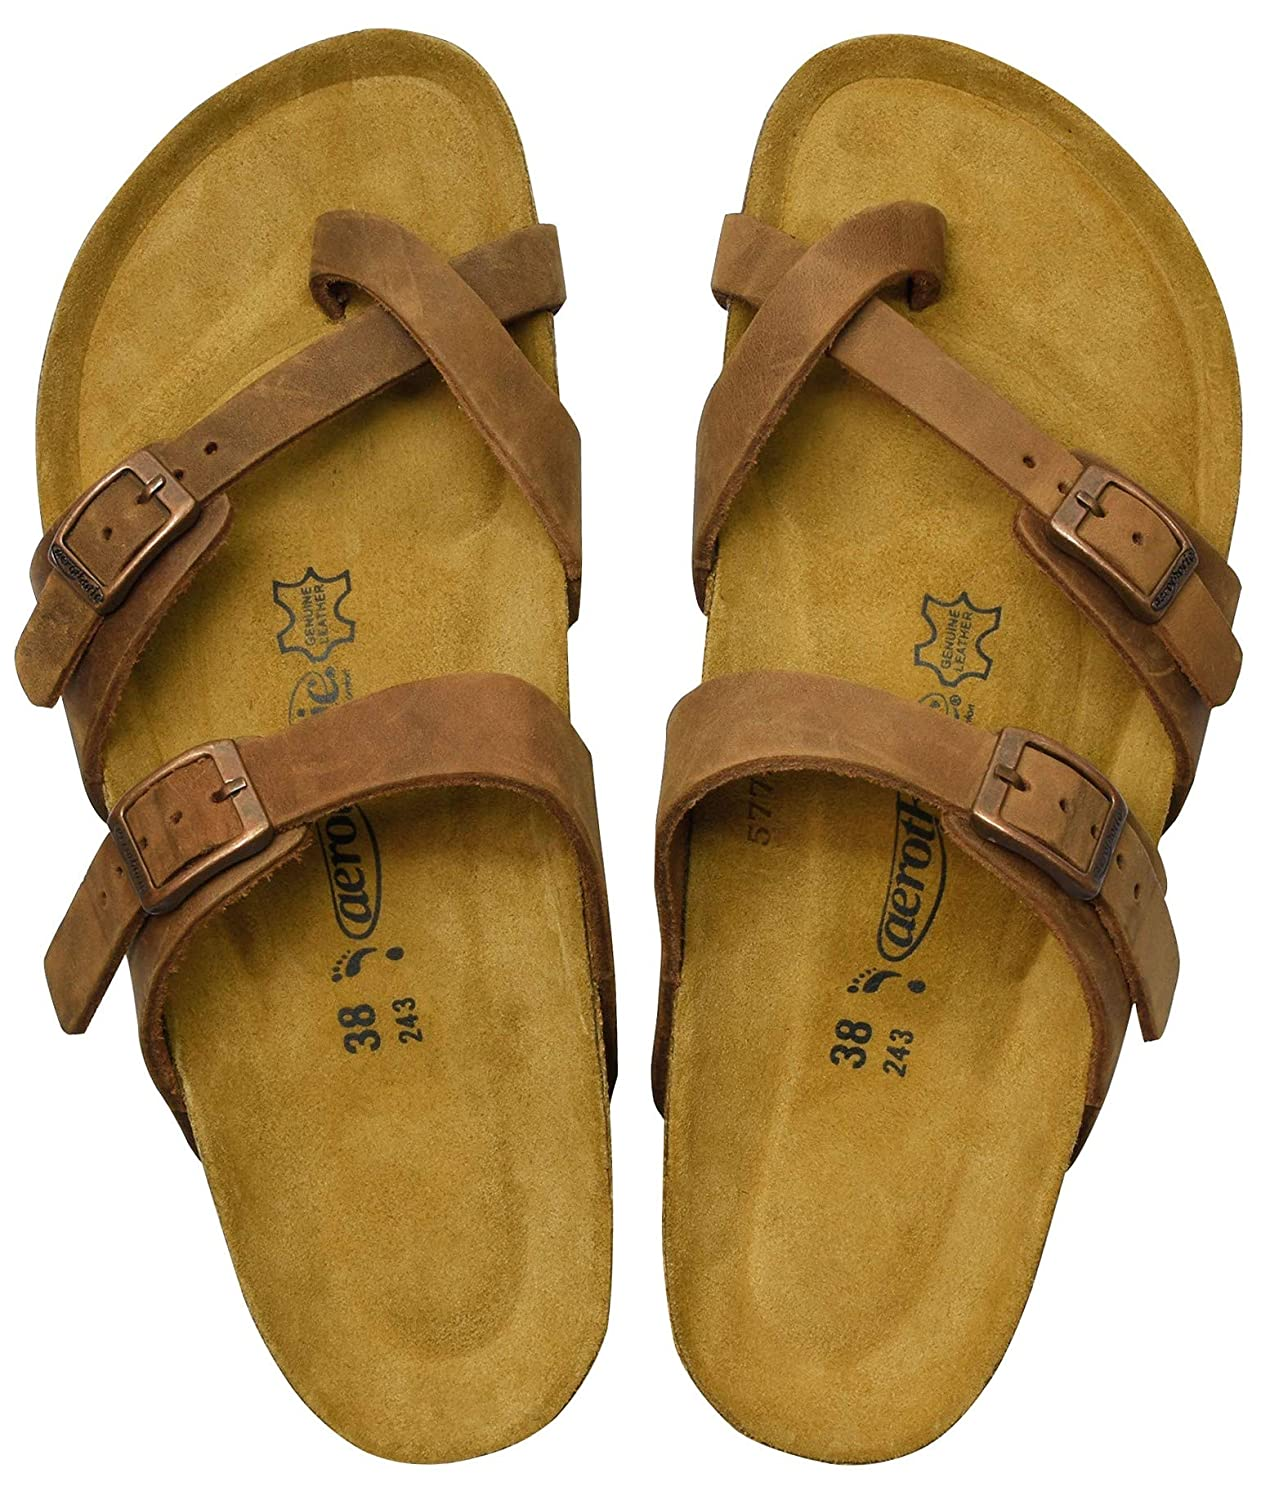 Women's Comfortable Arch Support Minerva Brown Leather Sandals - DeluxeAdultCostumes.com